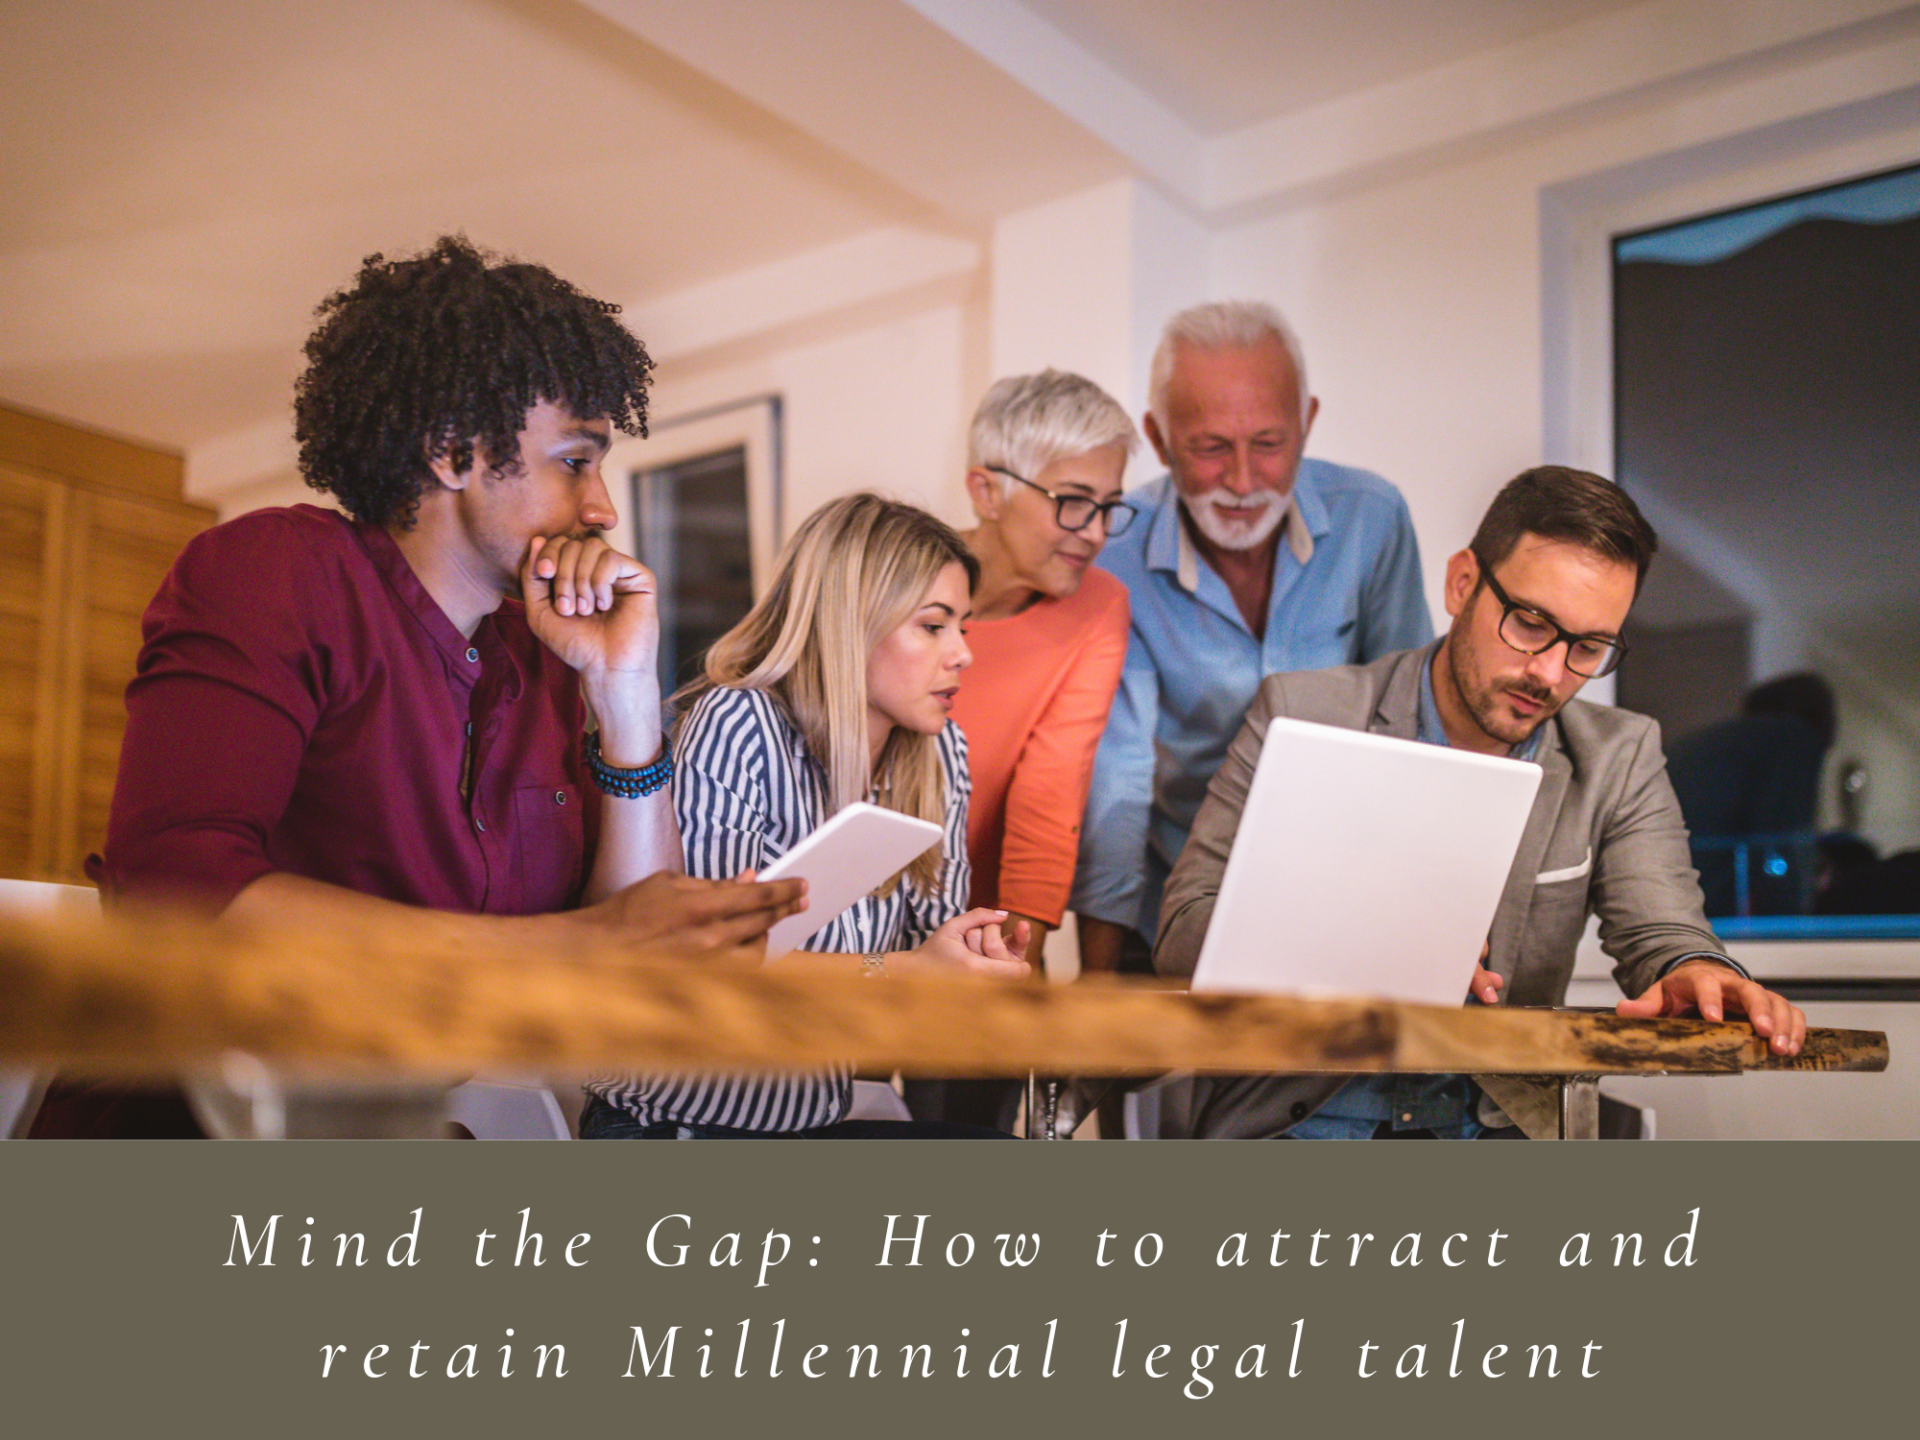 Mind the Gap! How to attract and retain Millennial legal talent